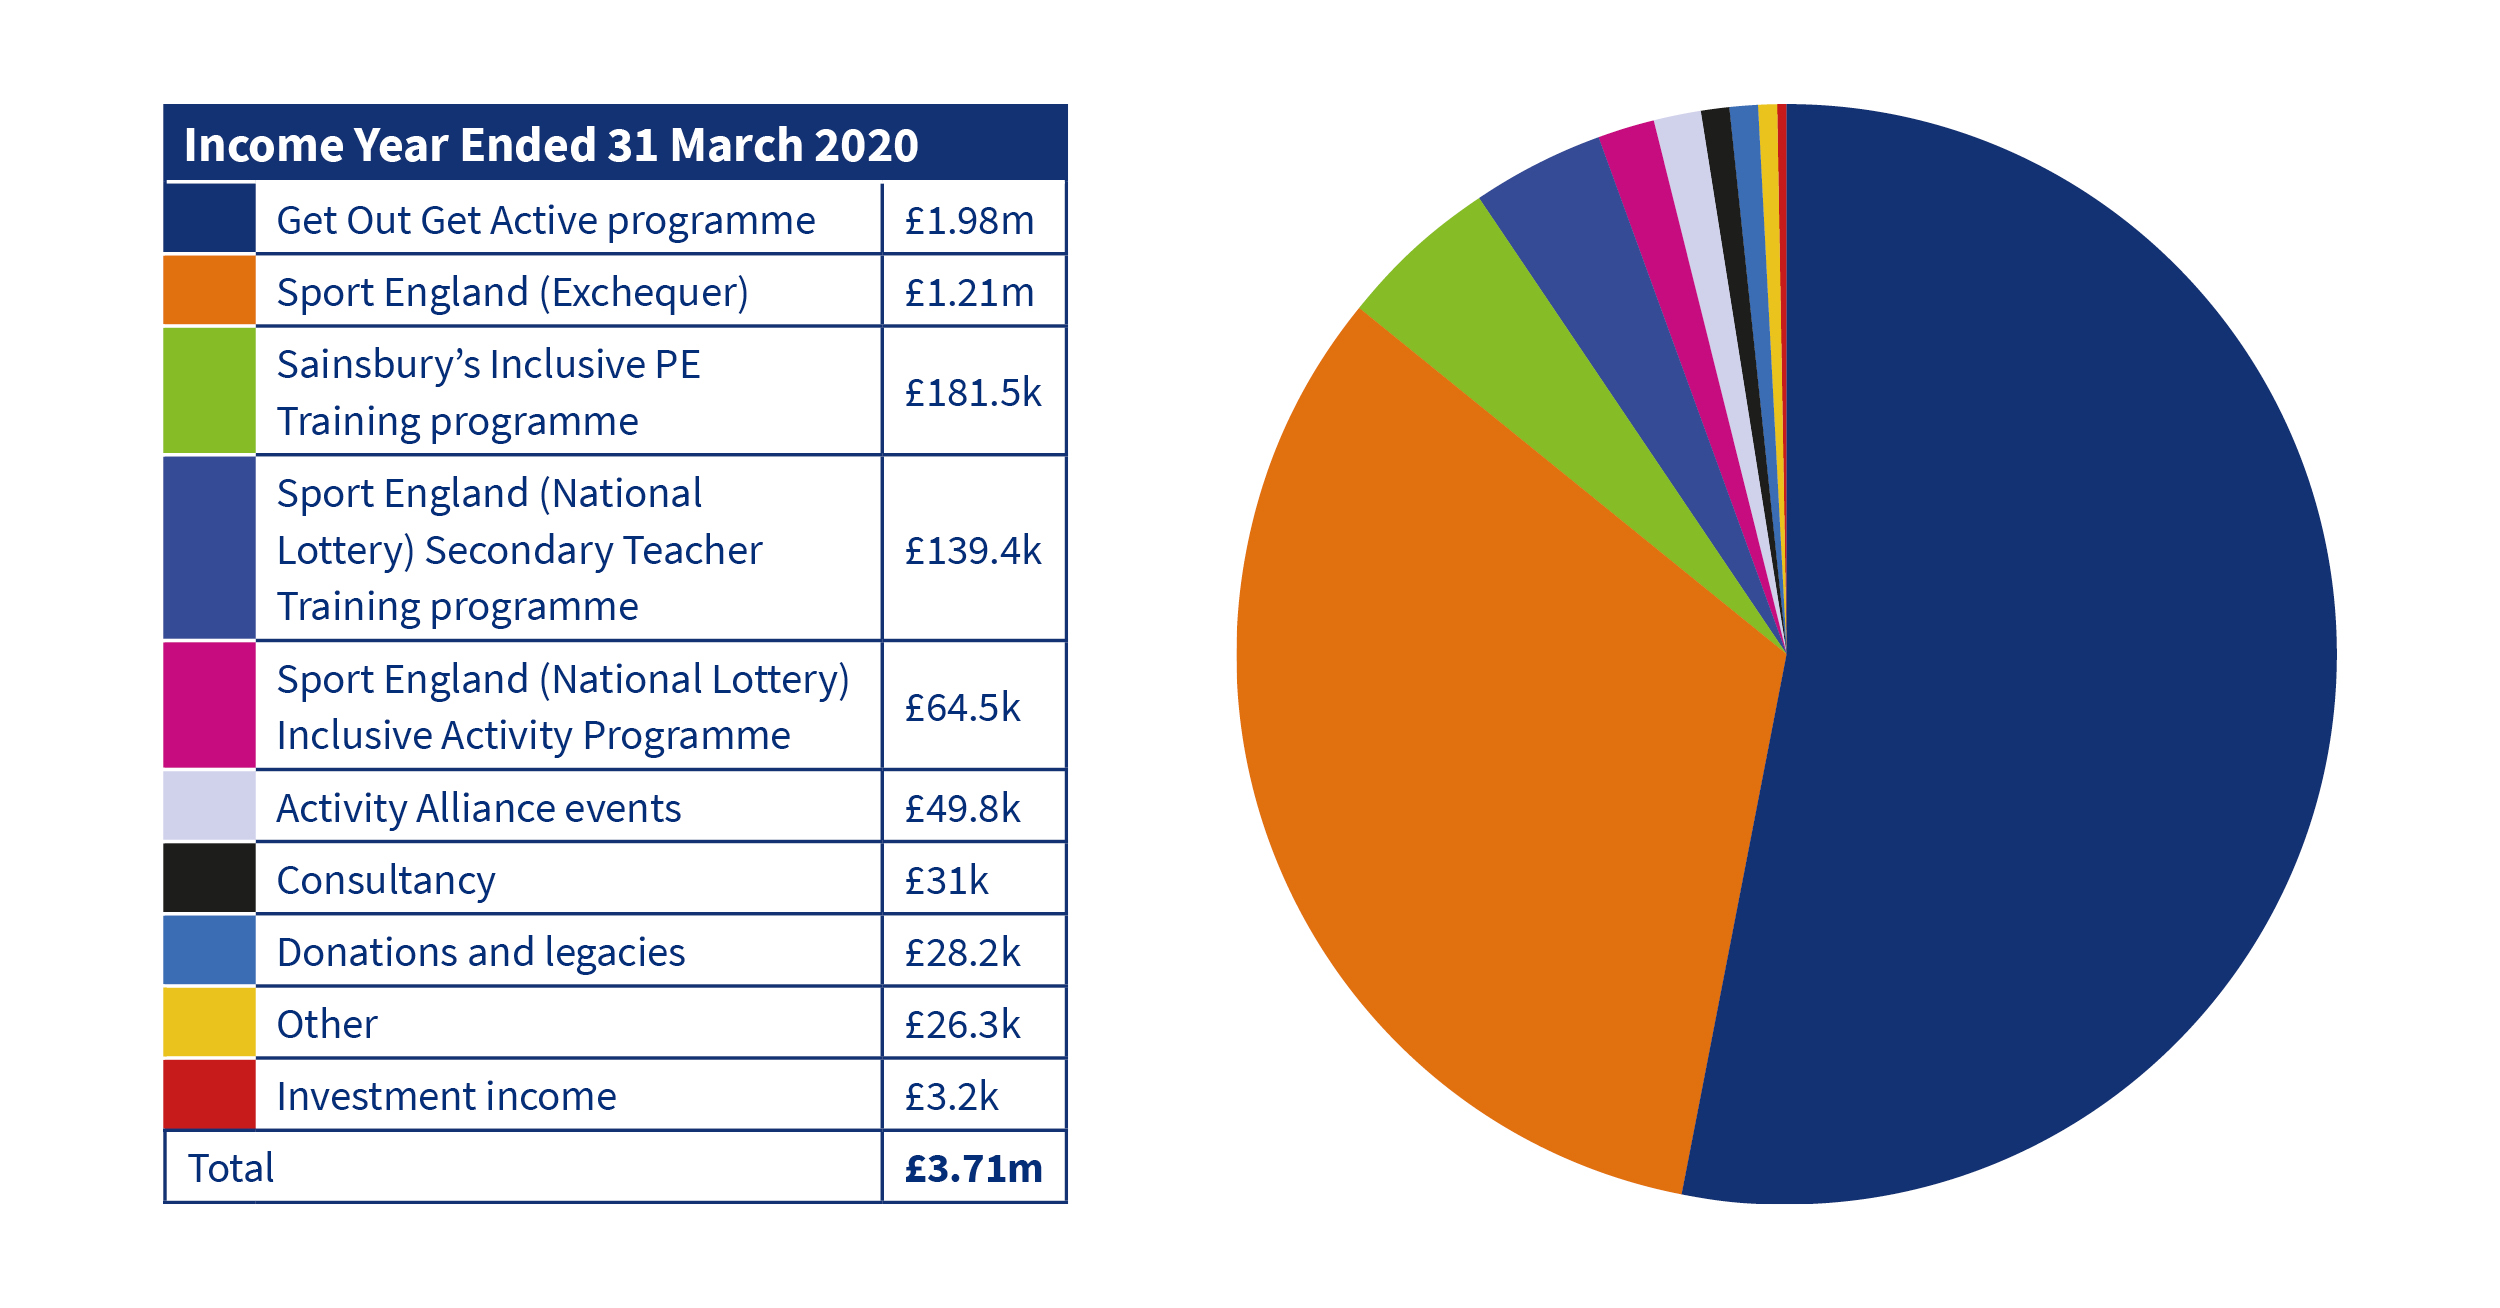 Activity Alliance income year ended 31 March 2020 table and pie chart